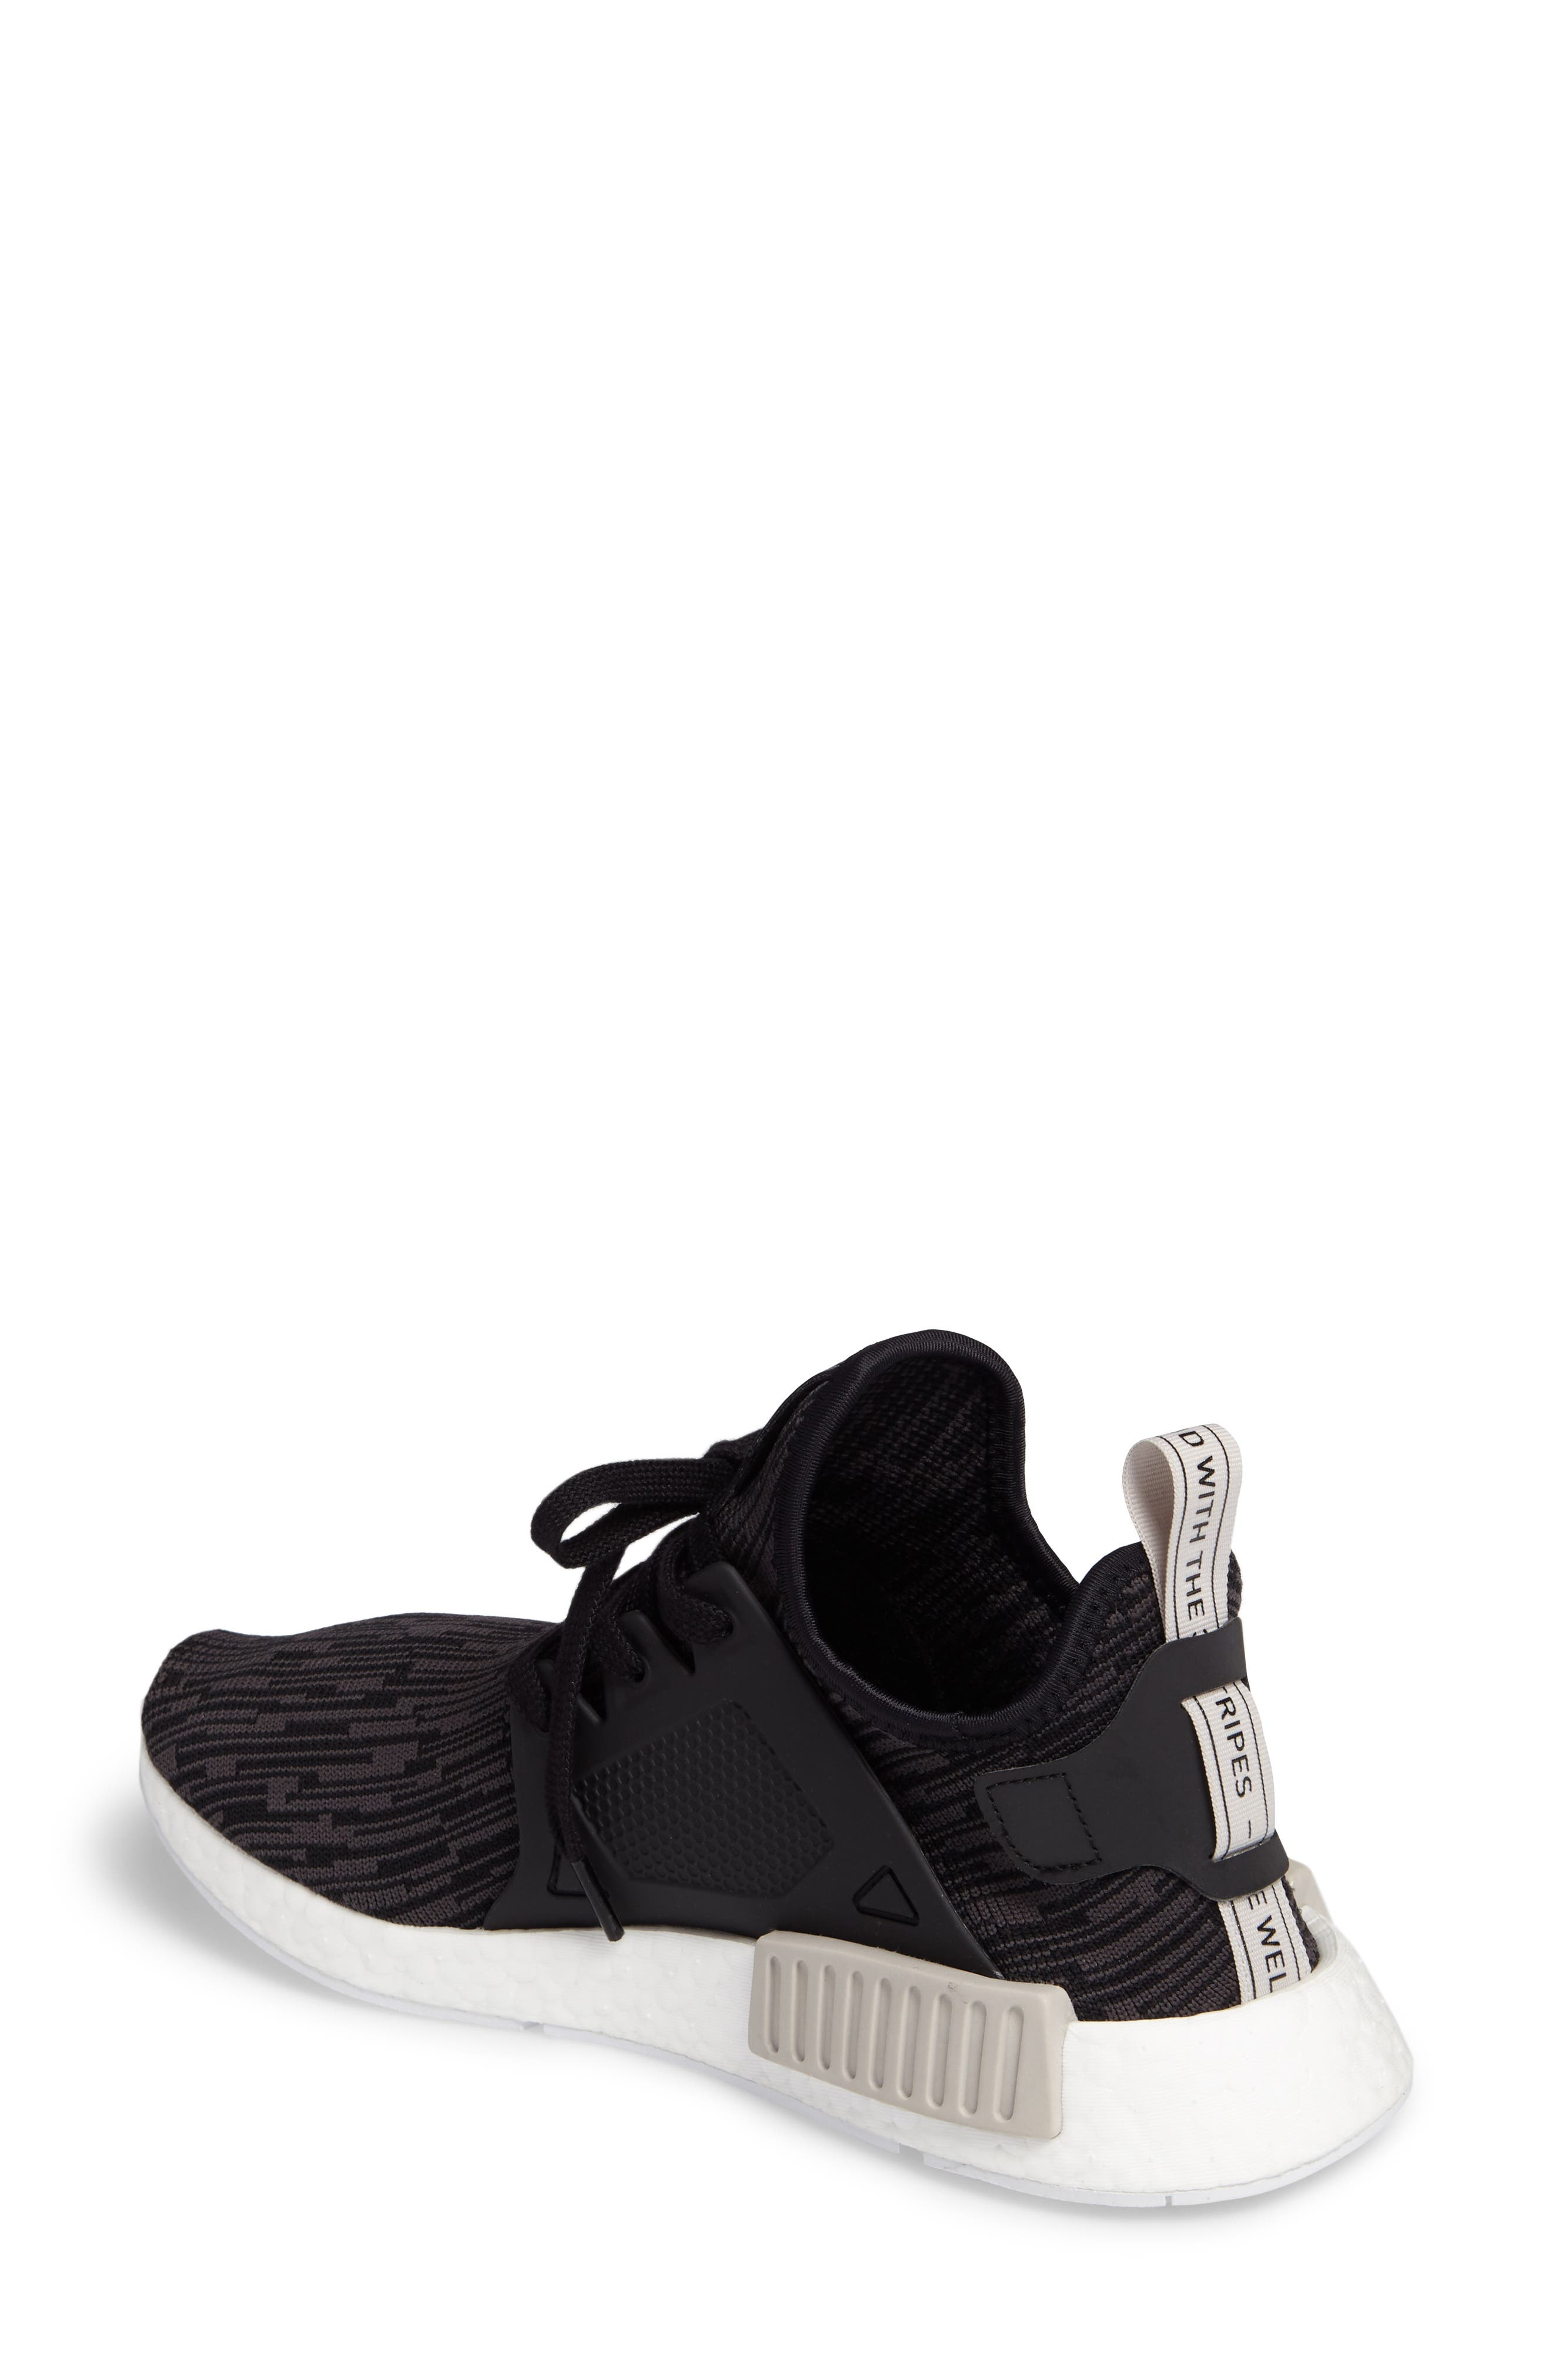 NMD XR1 Athletic Shoe,                             Alternate thumbnail 2, color,                             001